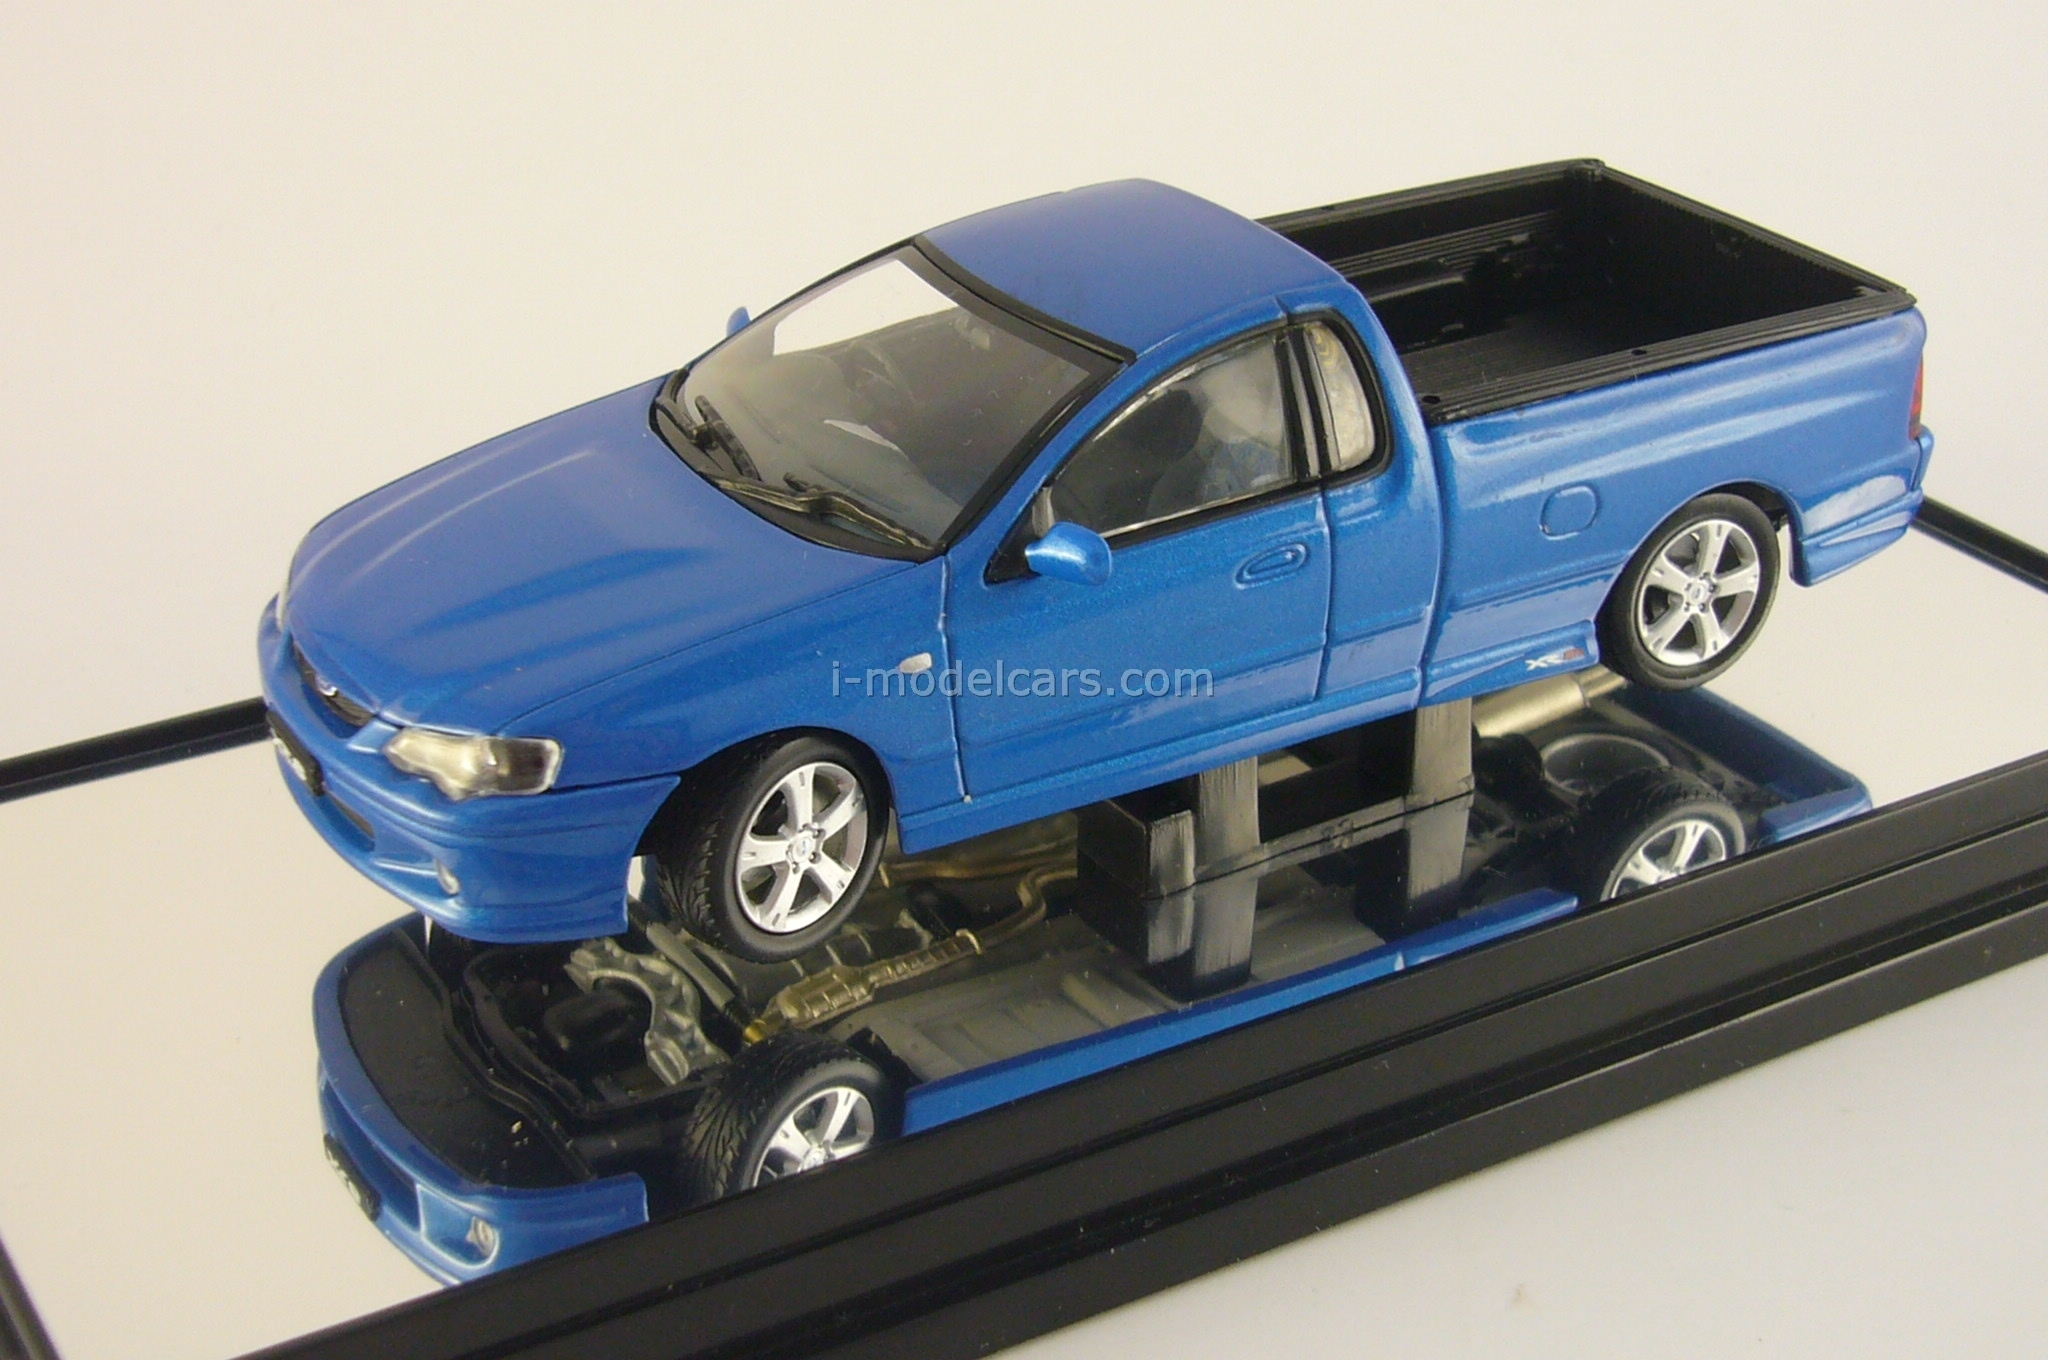 Model cars ford falcon ba xr8 ute blueprint classic carlectables 143 ford falcon ba xr8 ute blueprint classic carlectables 143 malvernweather Gallery